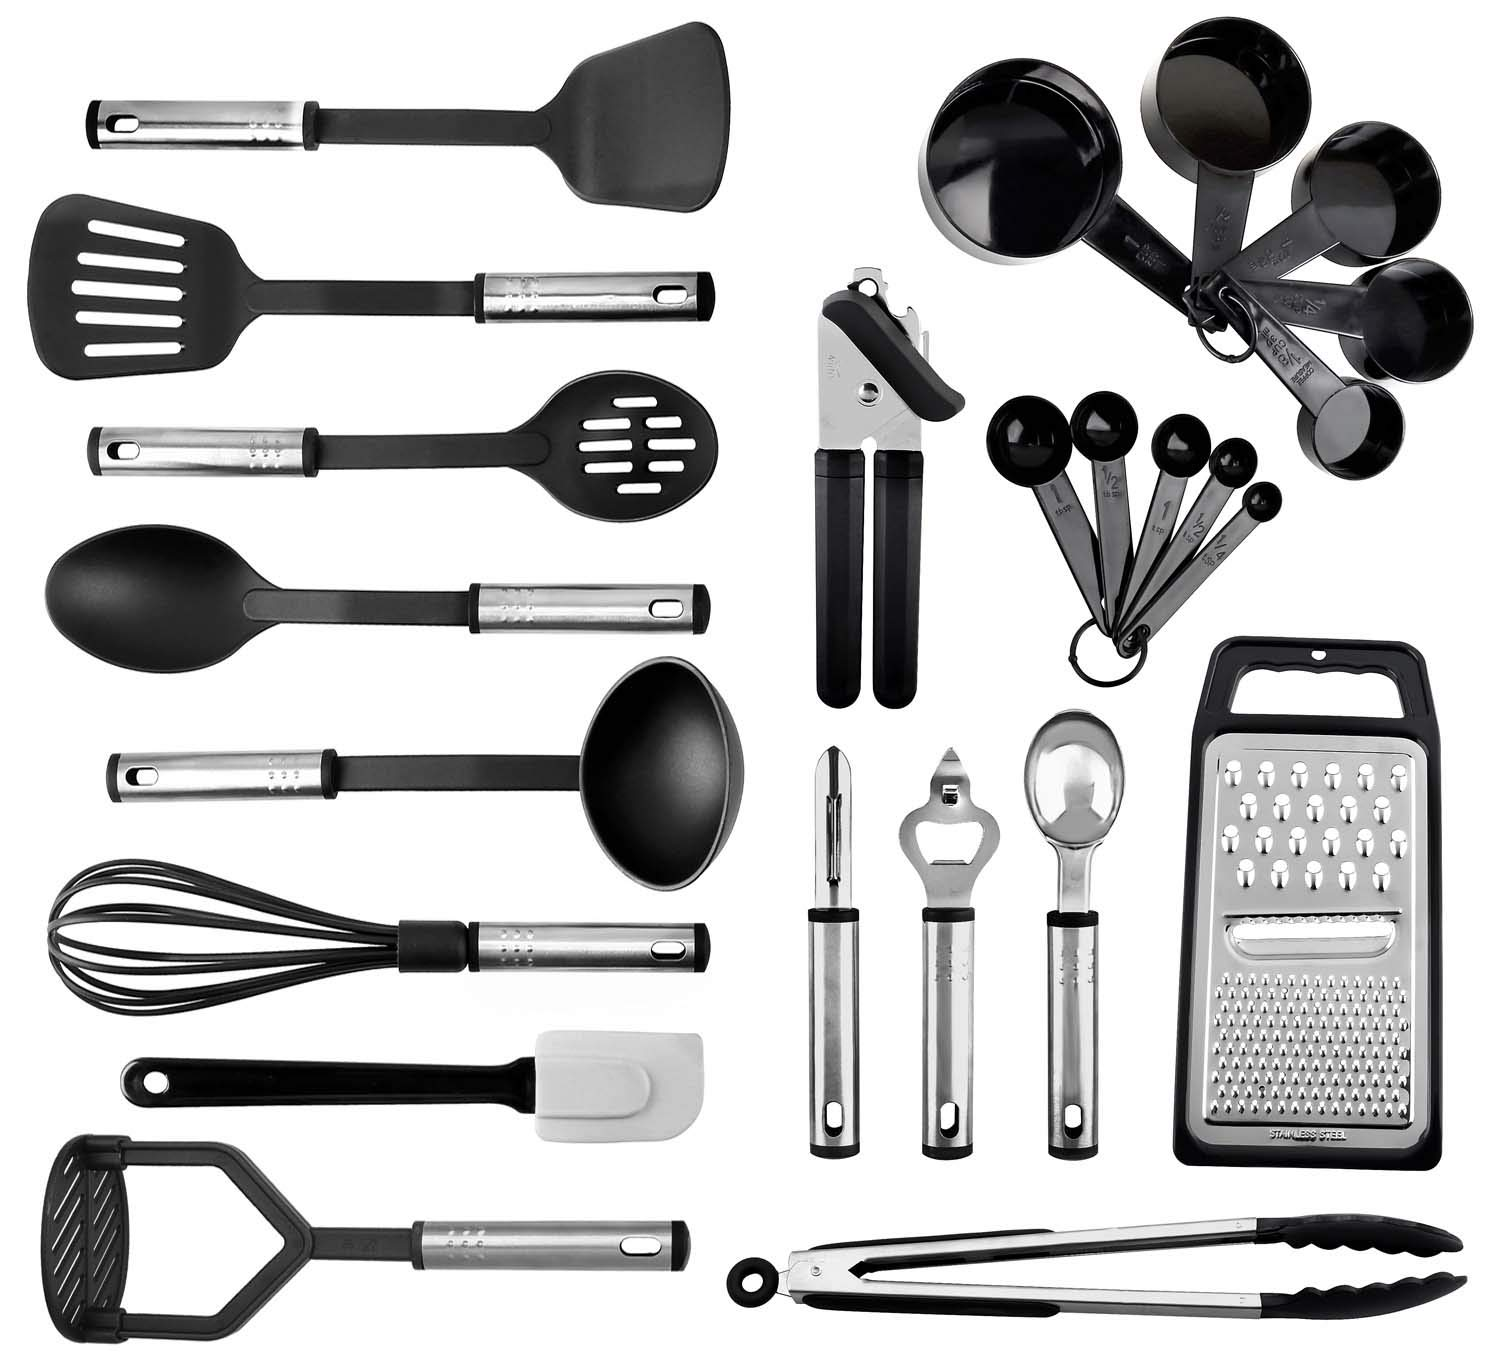 Kitchen Utensils set - 24 Nylon Stainless Steel Cooking Supplies - Non-Stick and Heat Resistant Cookware set - New Chef's Kitchen Gadget Tools Collection - Best for Pots and Pans - Great Holiday Gift